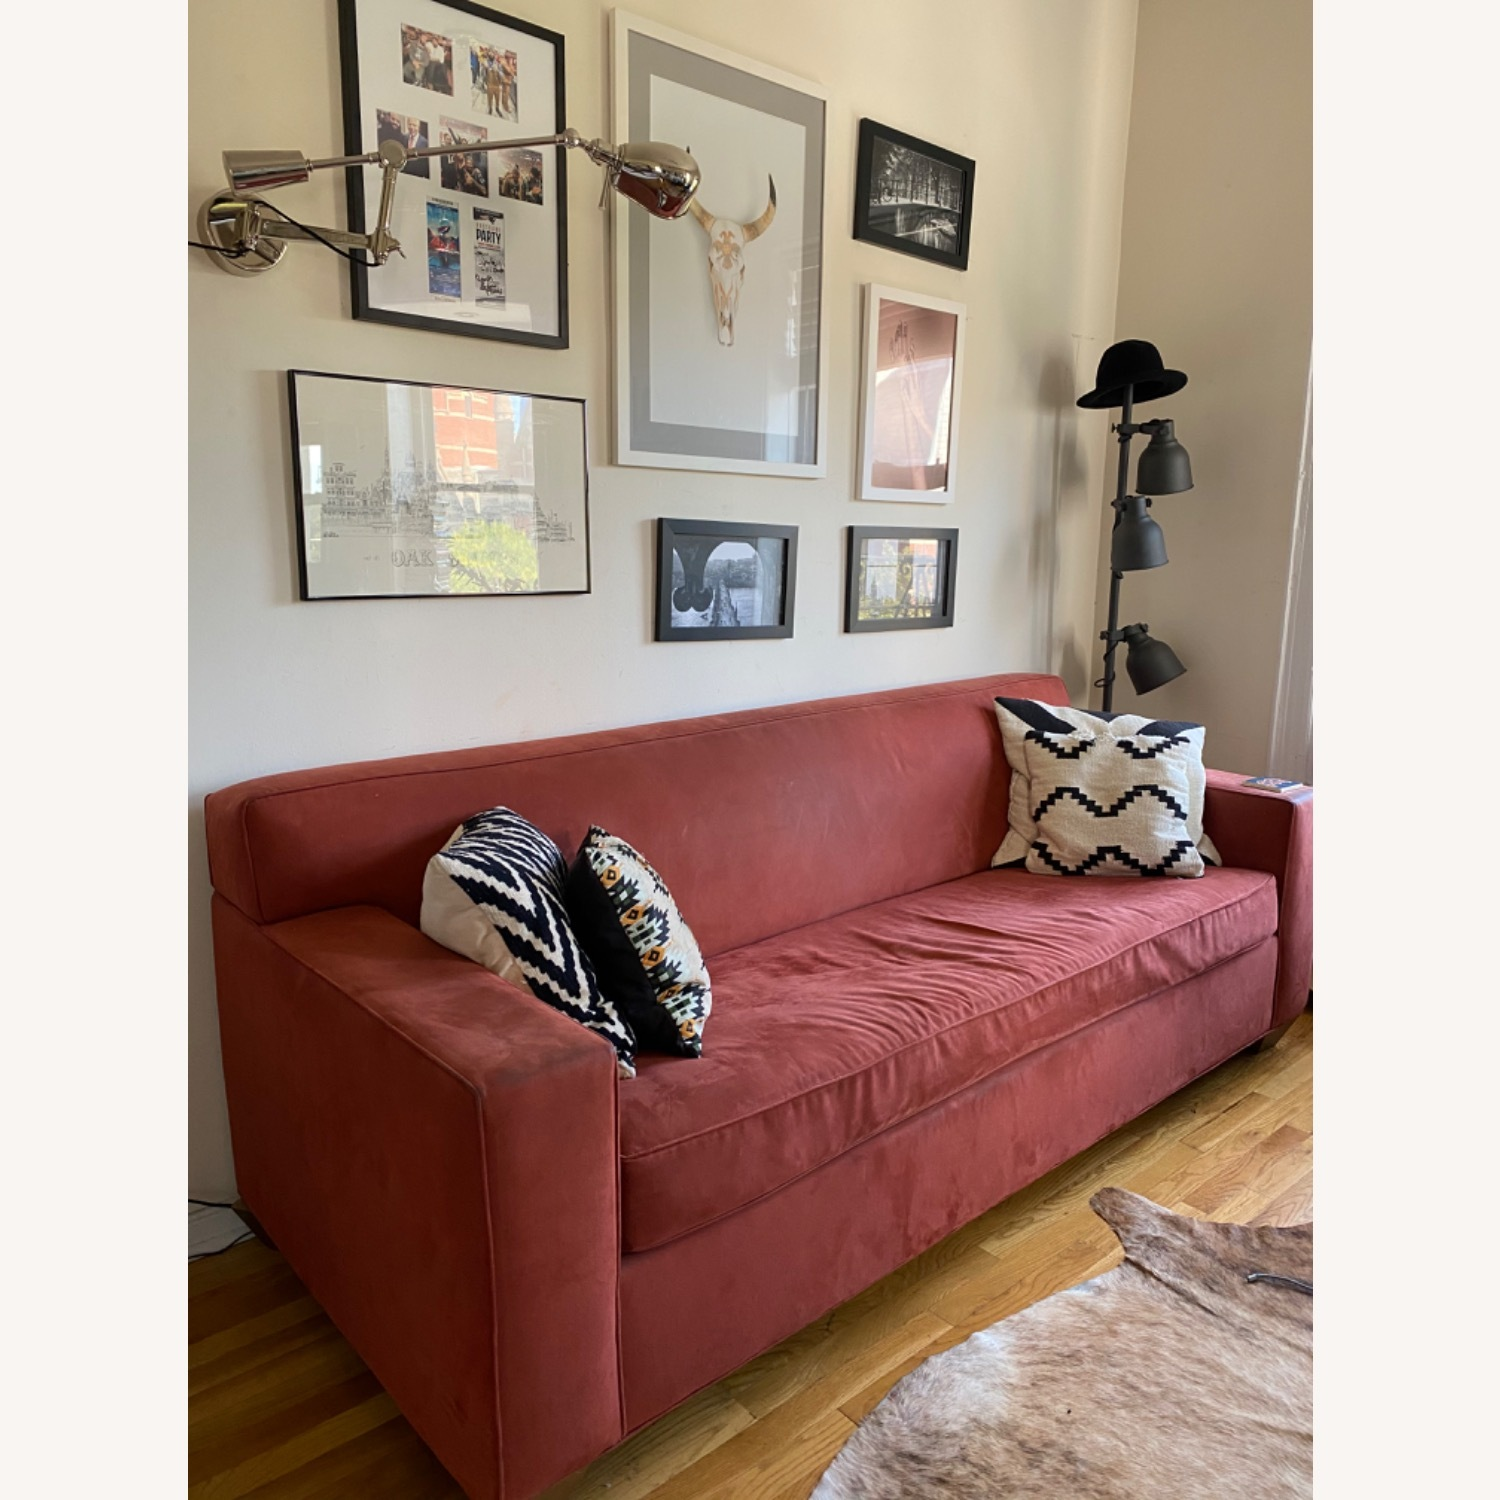 Queen Size Sleeper Couch - image-2